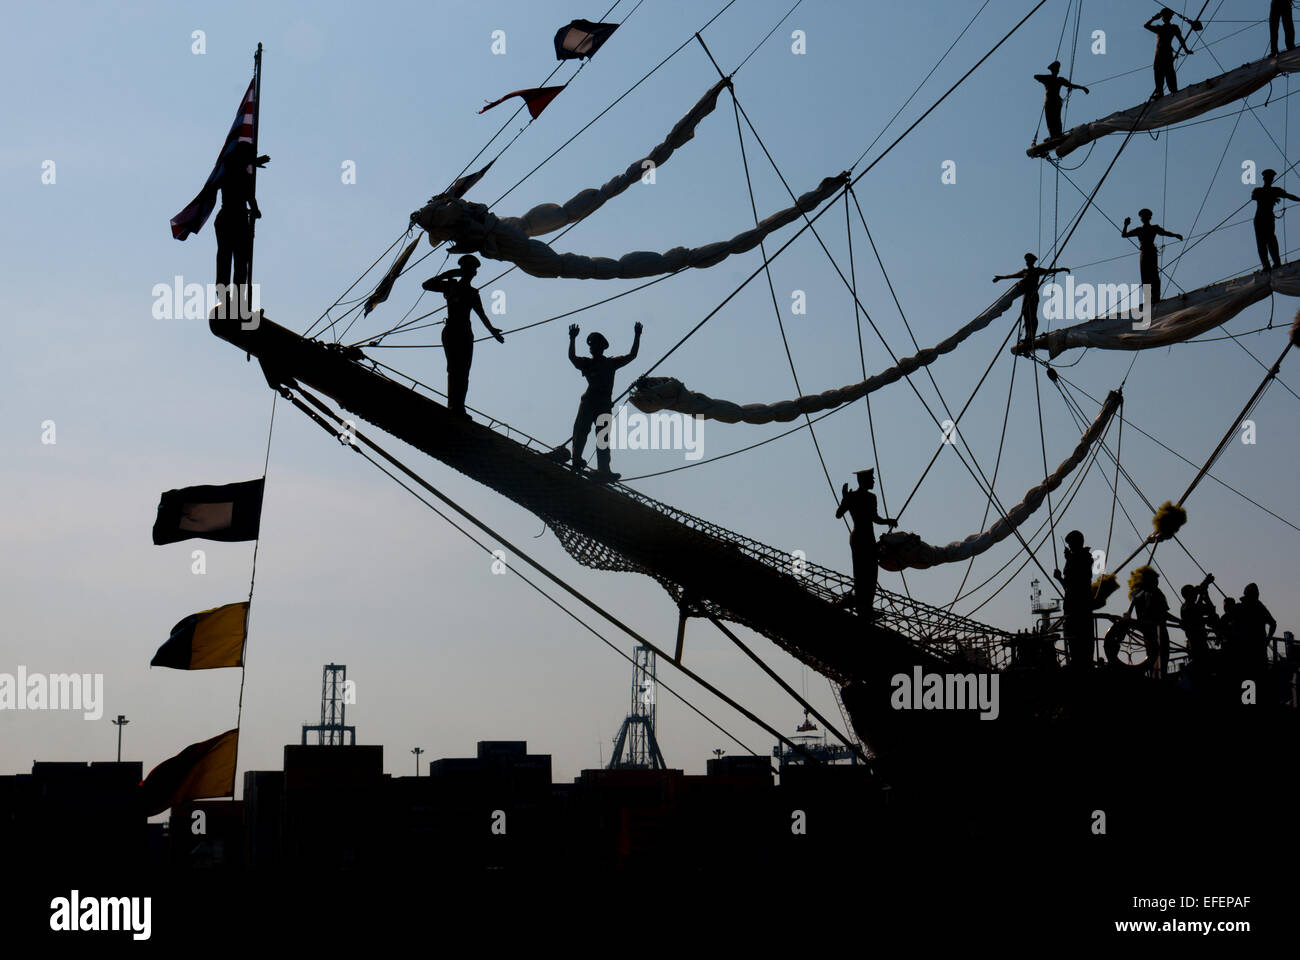 Indonesian navy cadets perform parade roll before the last sail of original Dewaruci tall ship in 2012. - Stock Image